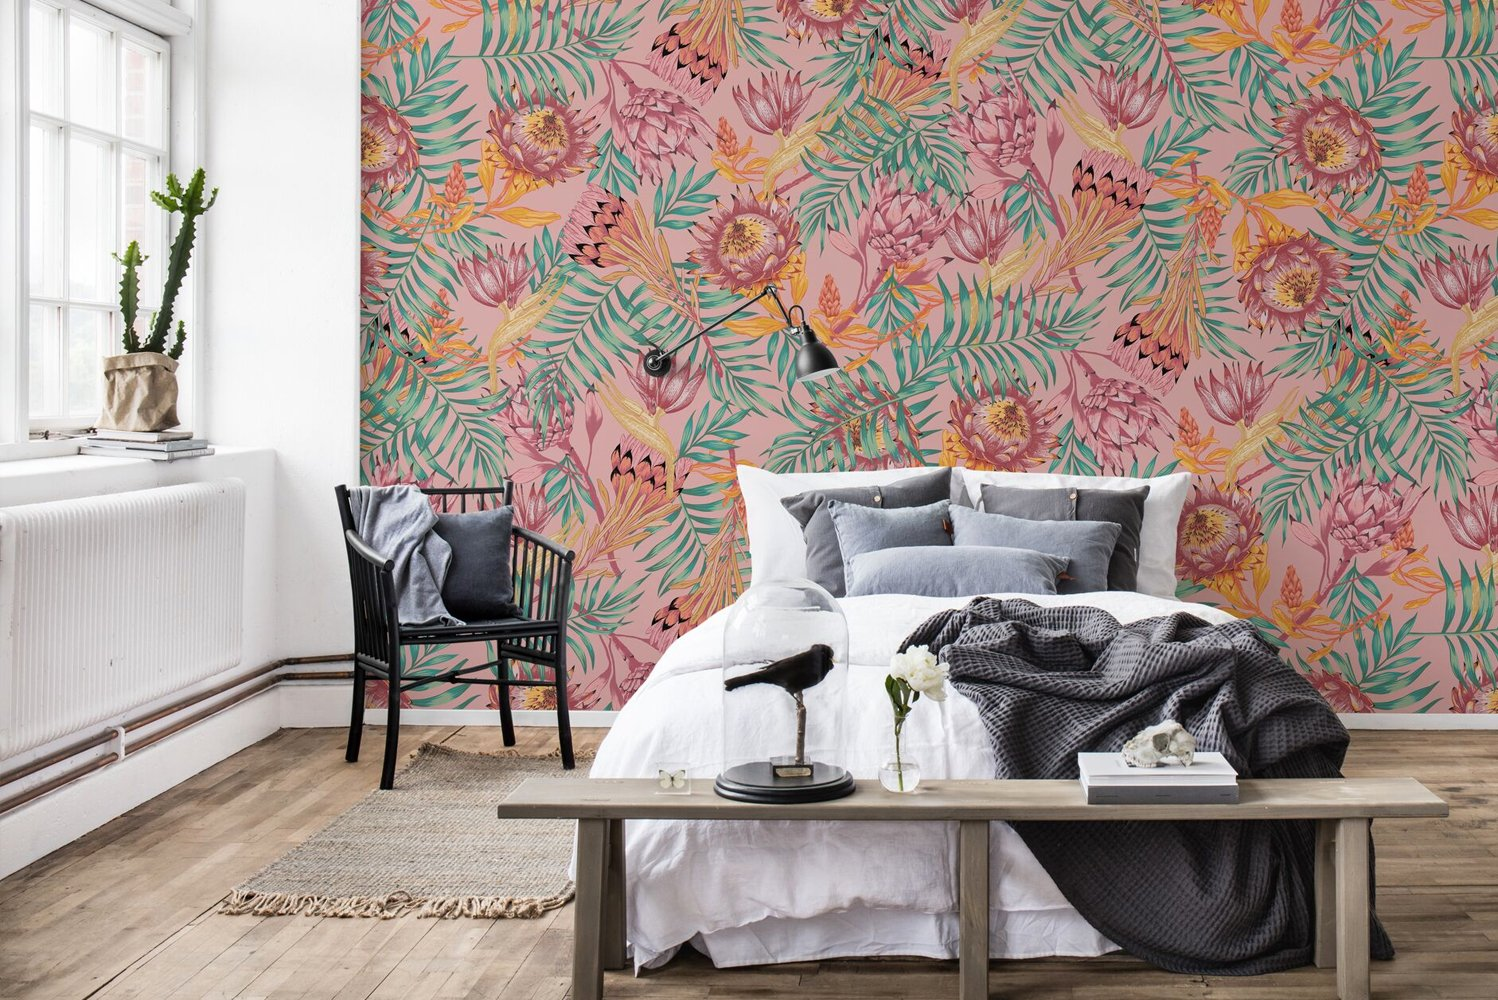 Some of the wallpapers consist of a bright design with flowers from the Protea species in a creme and a pink colorway.